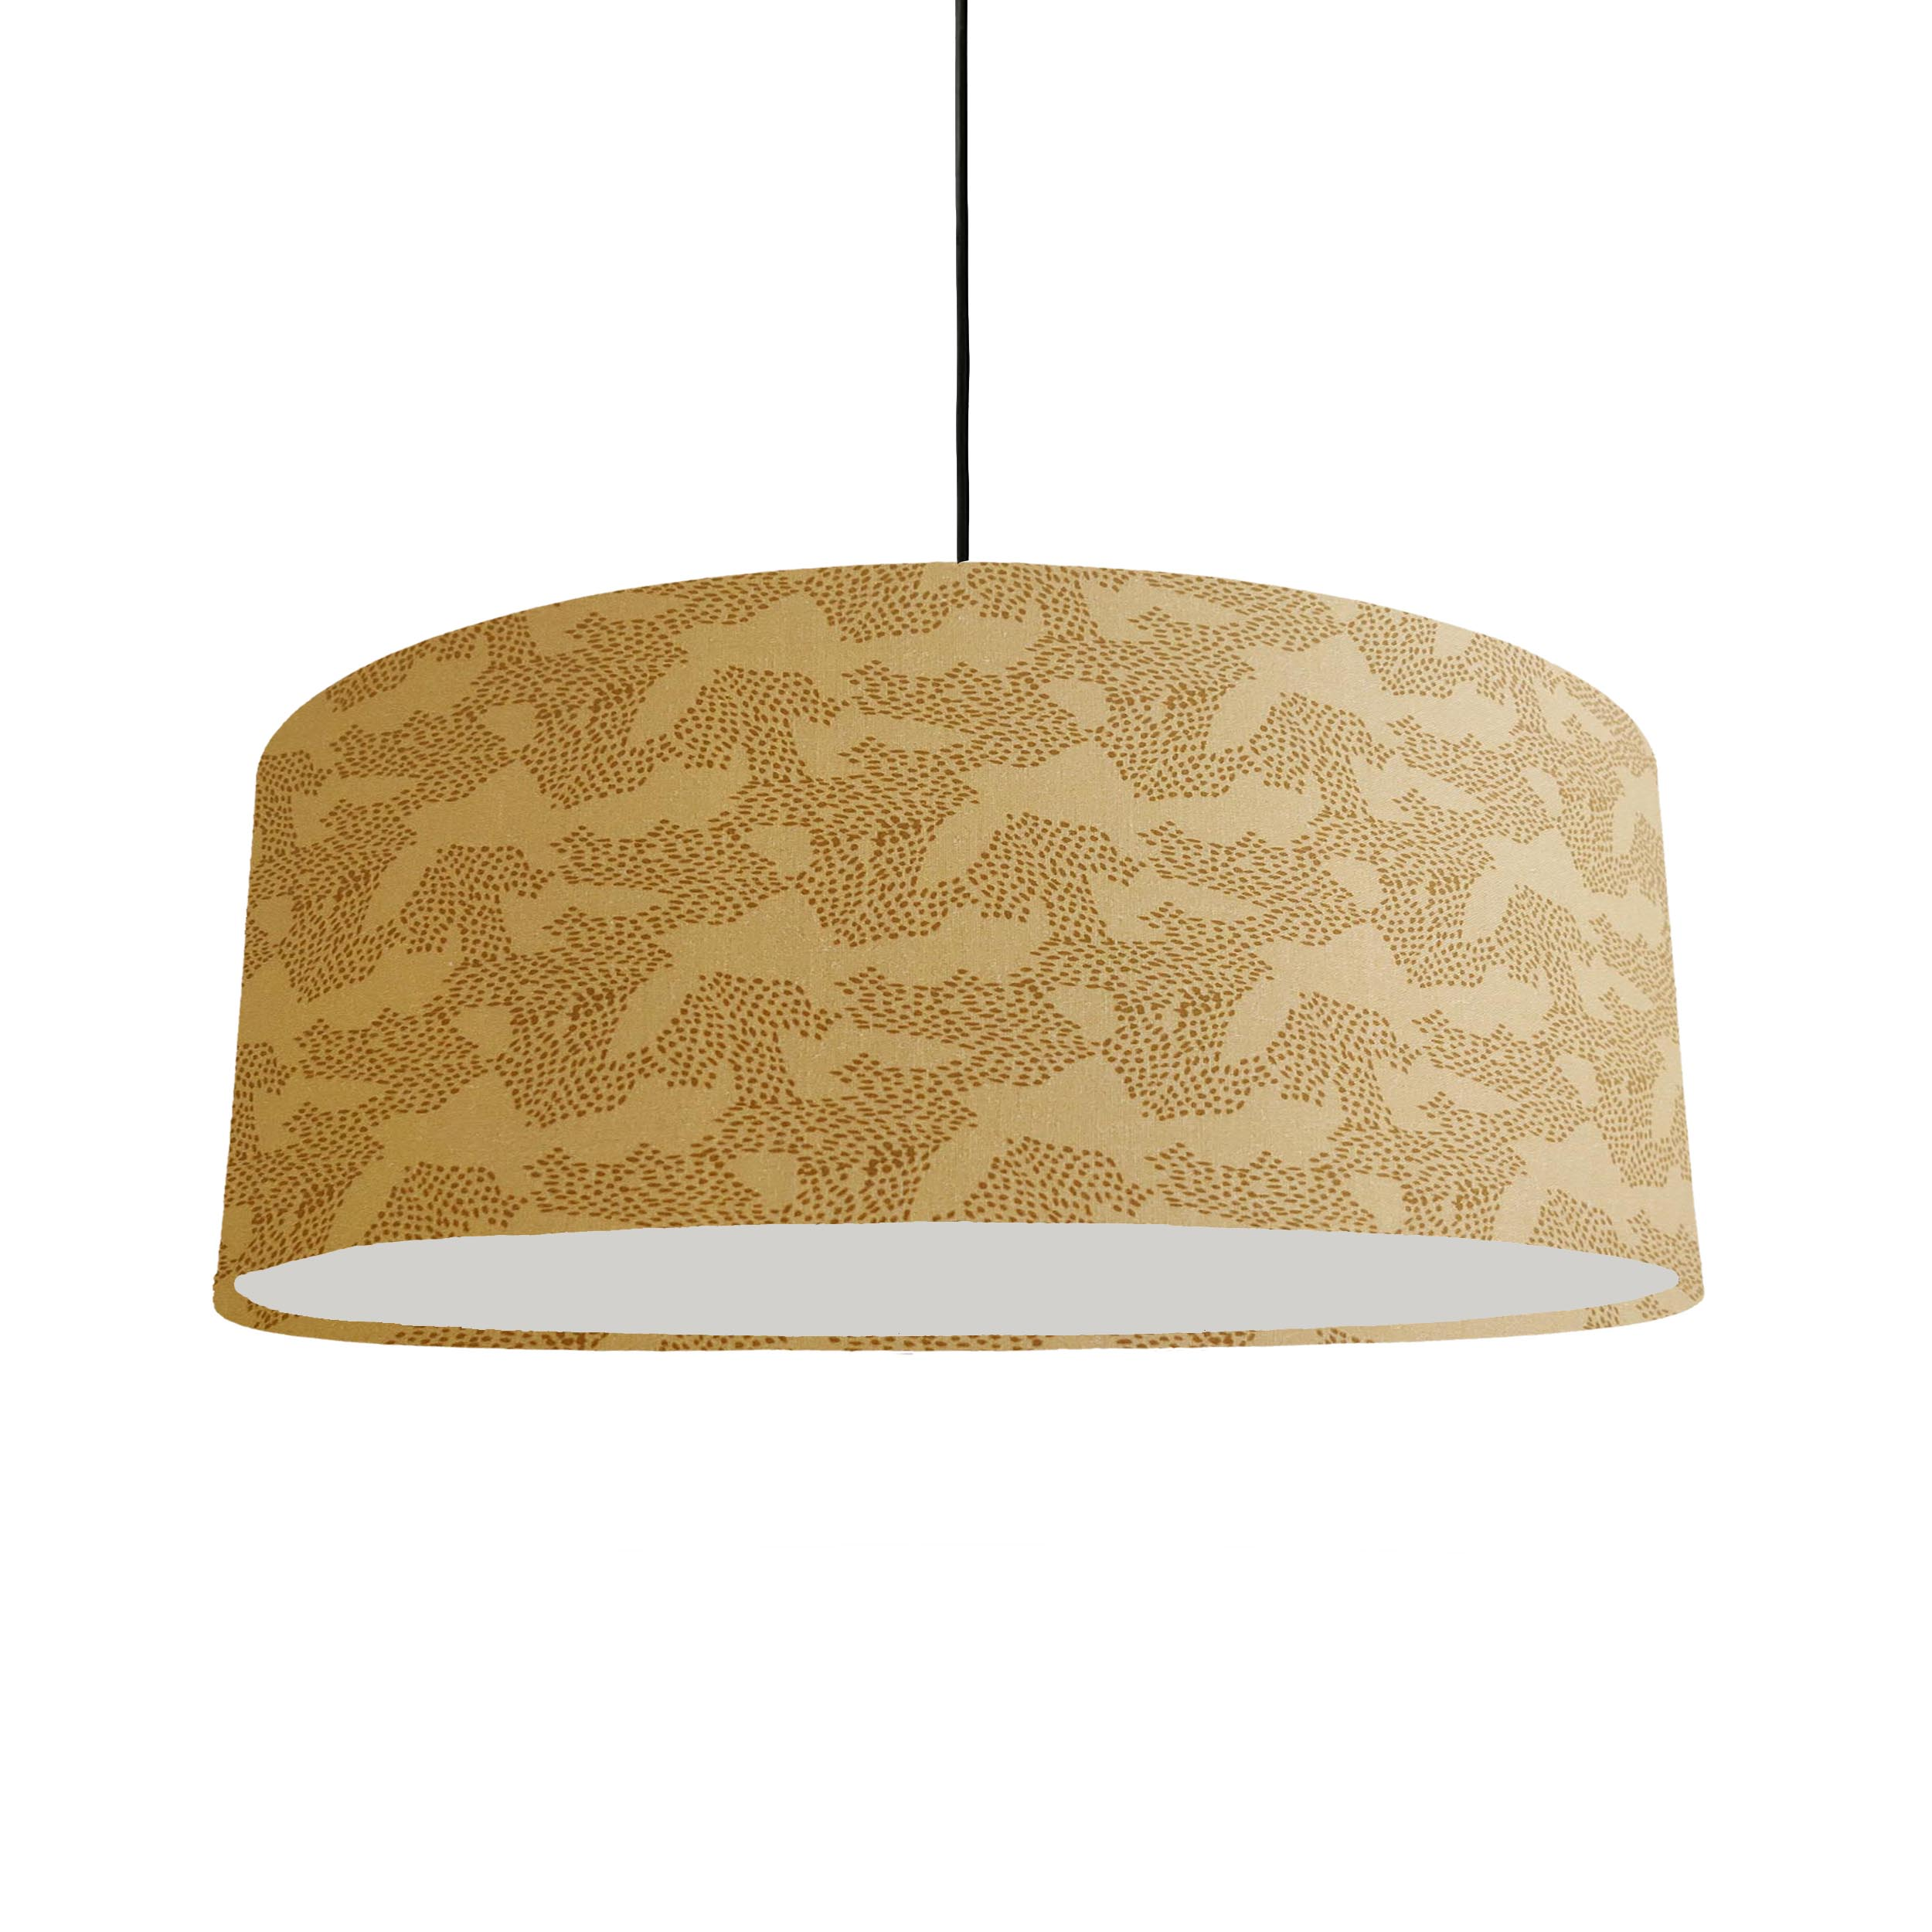 Extra Large Mustard Hanging Lampshade with Geometric Design